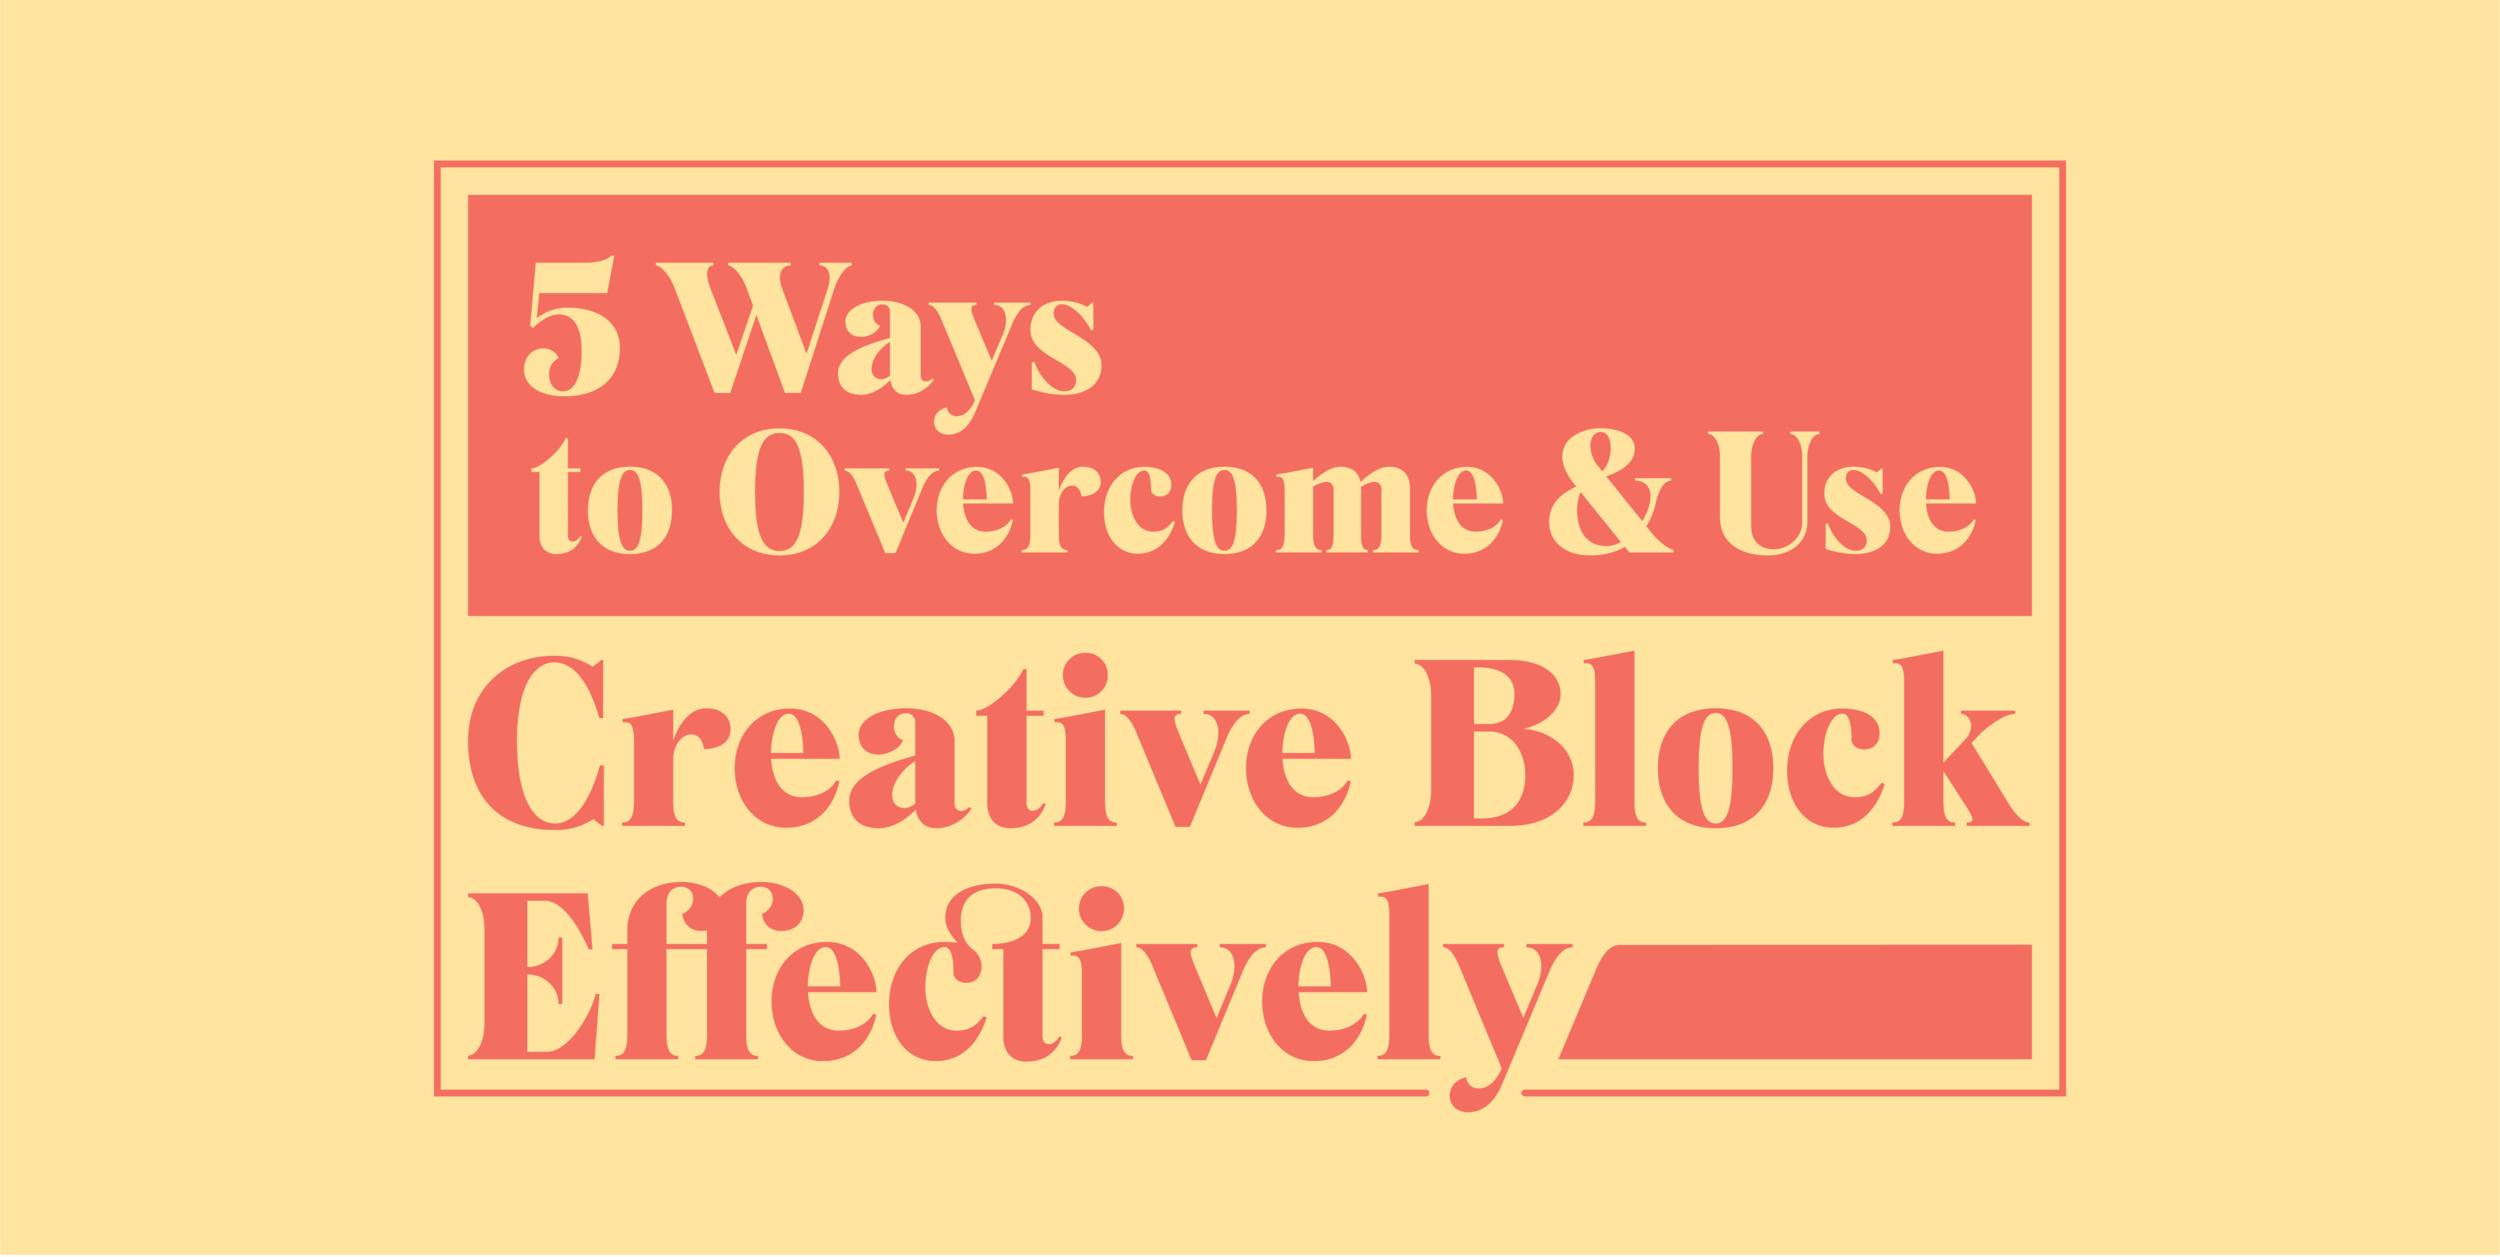 5-ways-to-overcome-and-use-creative-block-effectively-01.png